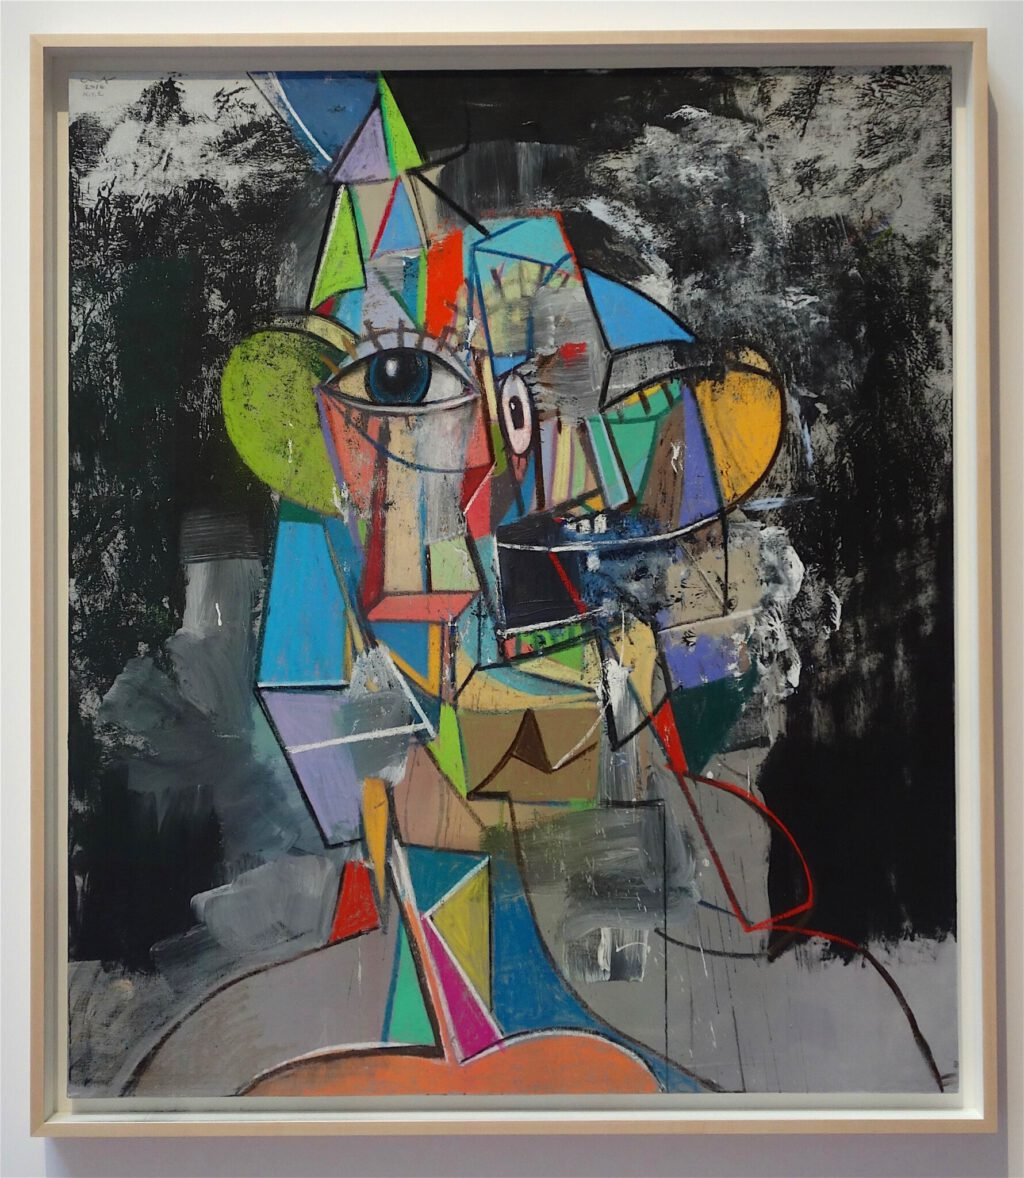 "George Condo ジョージ・コンド ""Untitled"" 2016, Acrylic, metallic, paint, charcoal and pastel on linen, 167.6 x 144.8 cm"